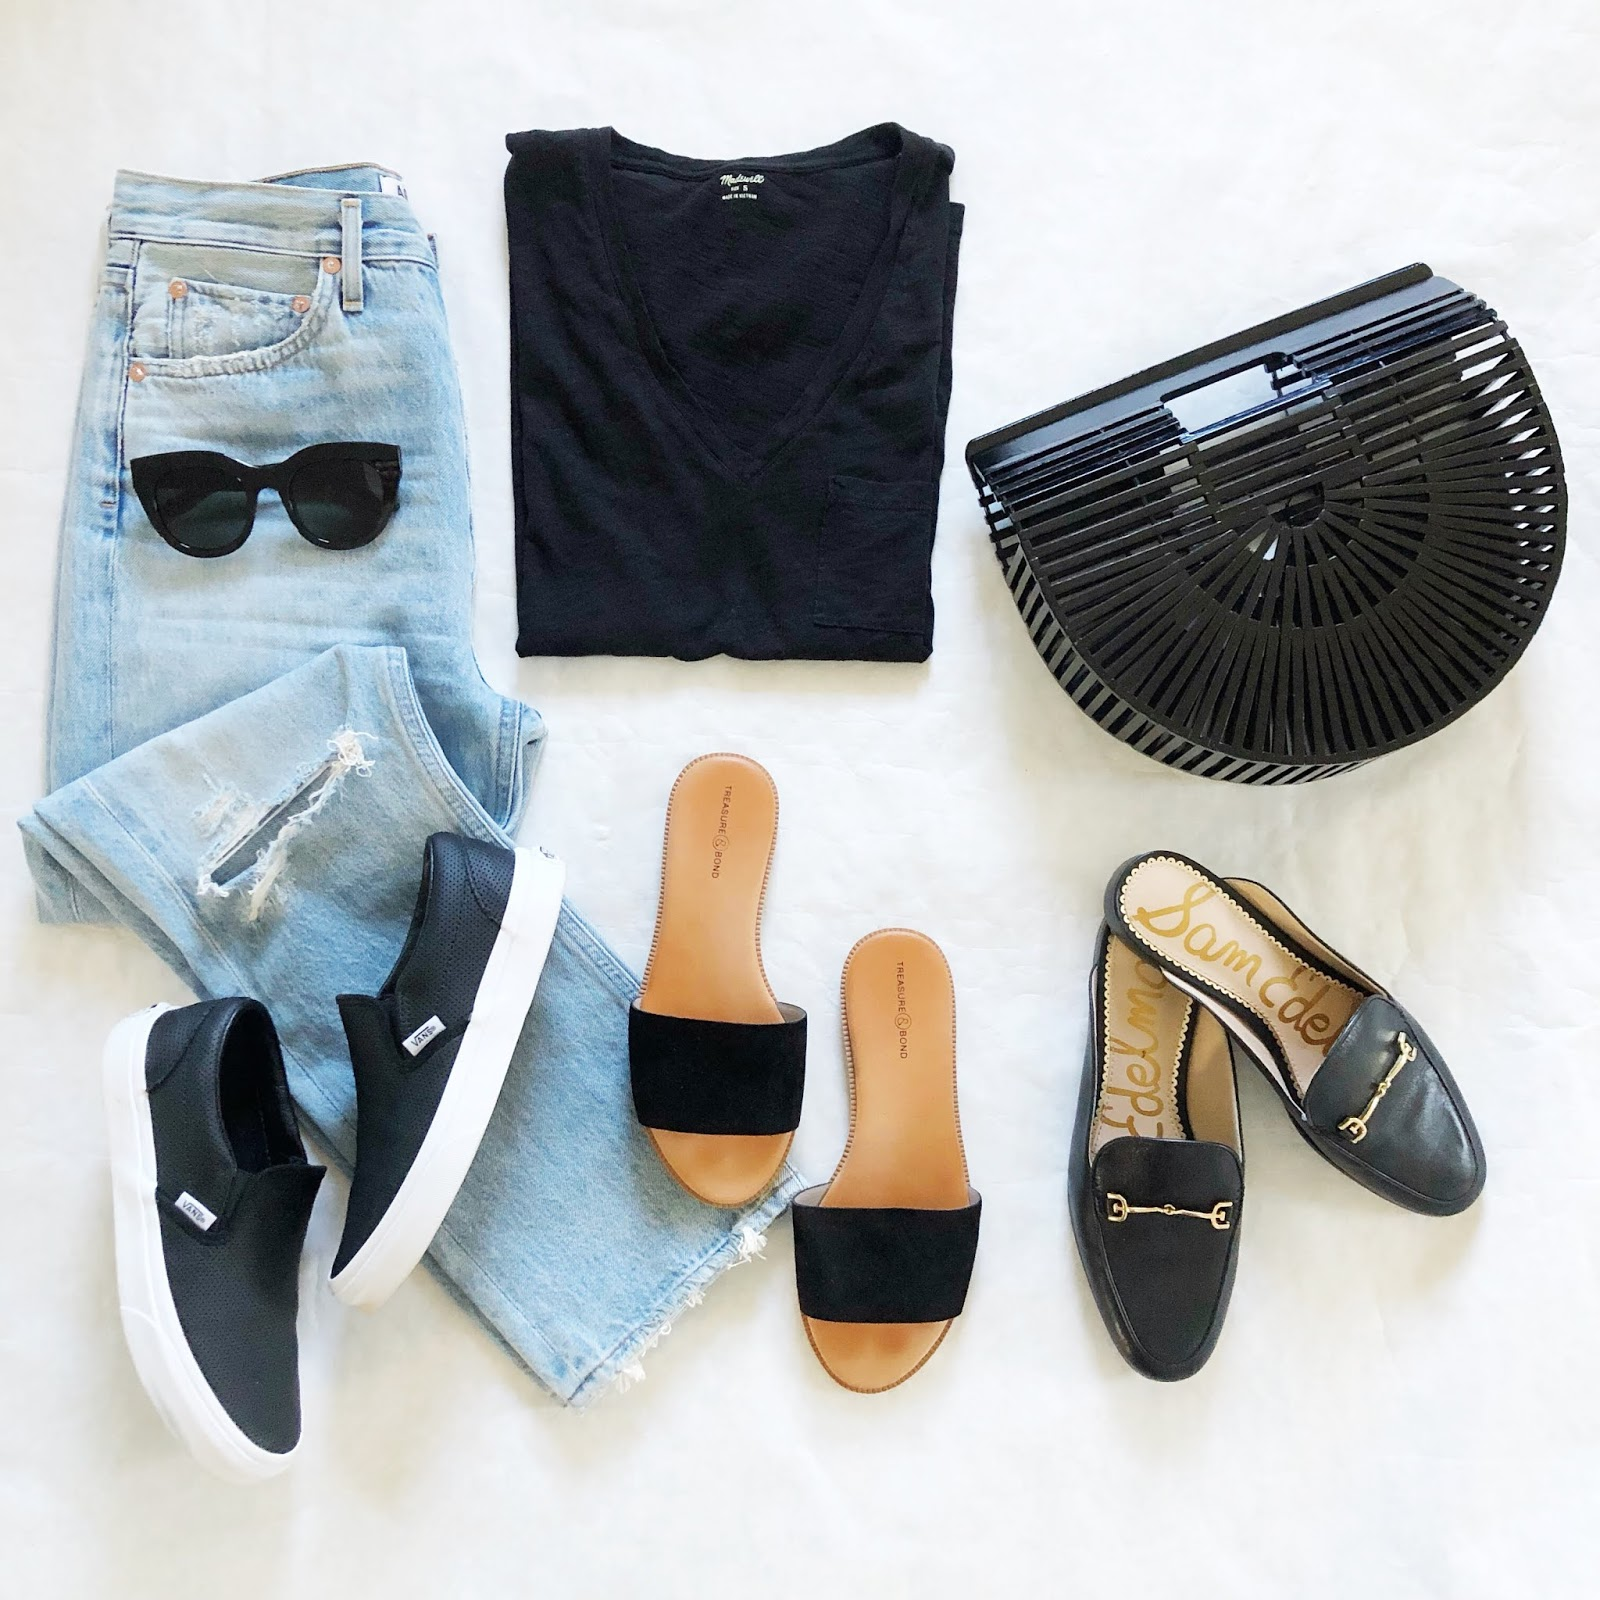 sports shoes a323a 1e02b above  I love how a pair of shoes can totally transform the feel of an  outfit... sneakers, sandals or loafers would all work equally well with  this jeans ...